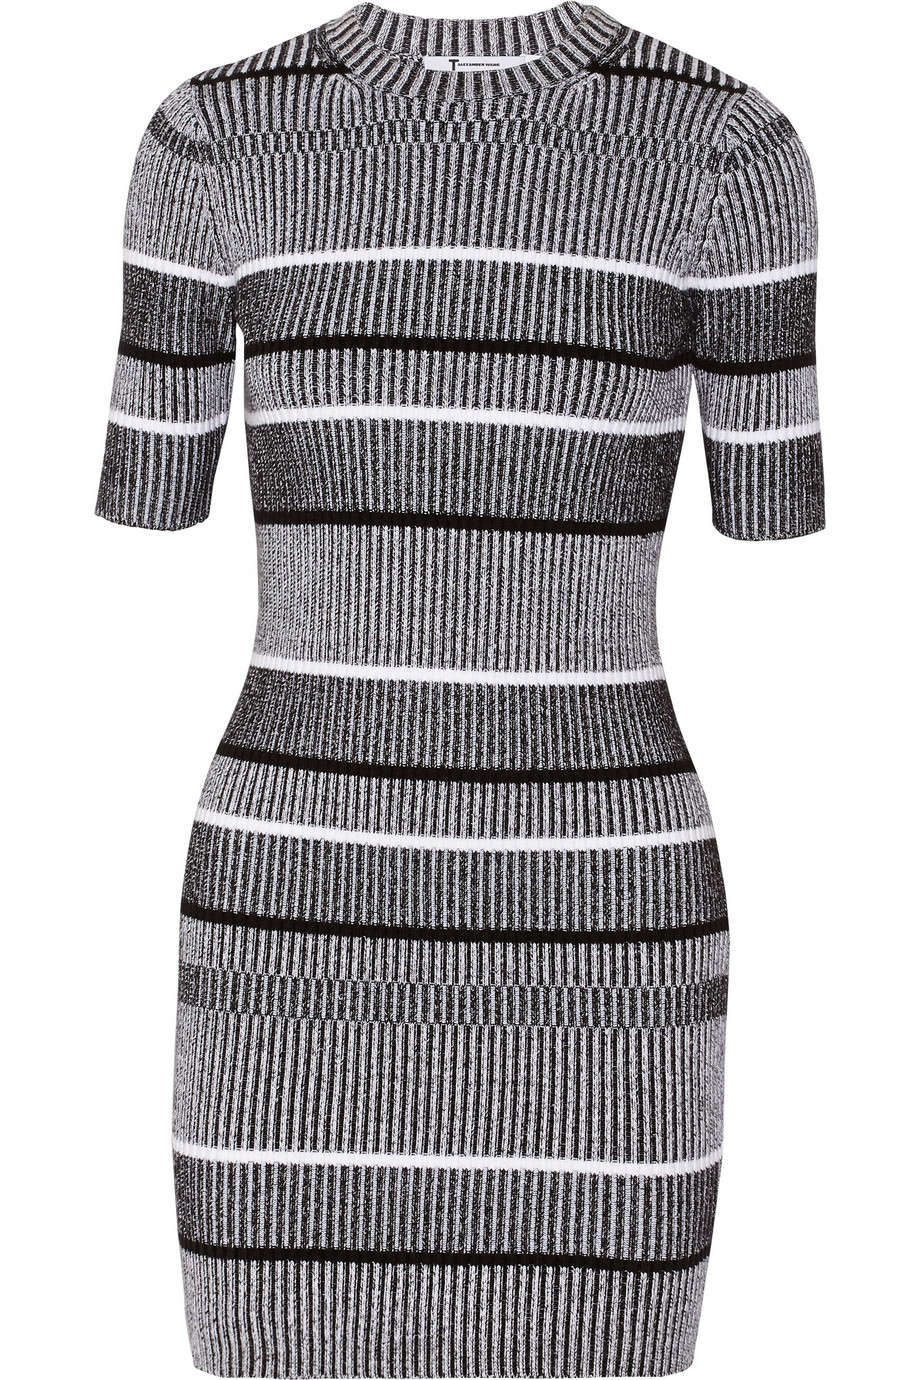 T By Alexander Wang Ribbed Dress